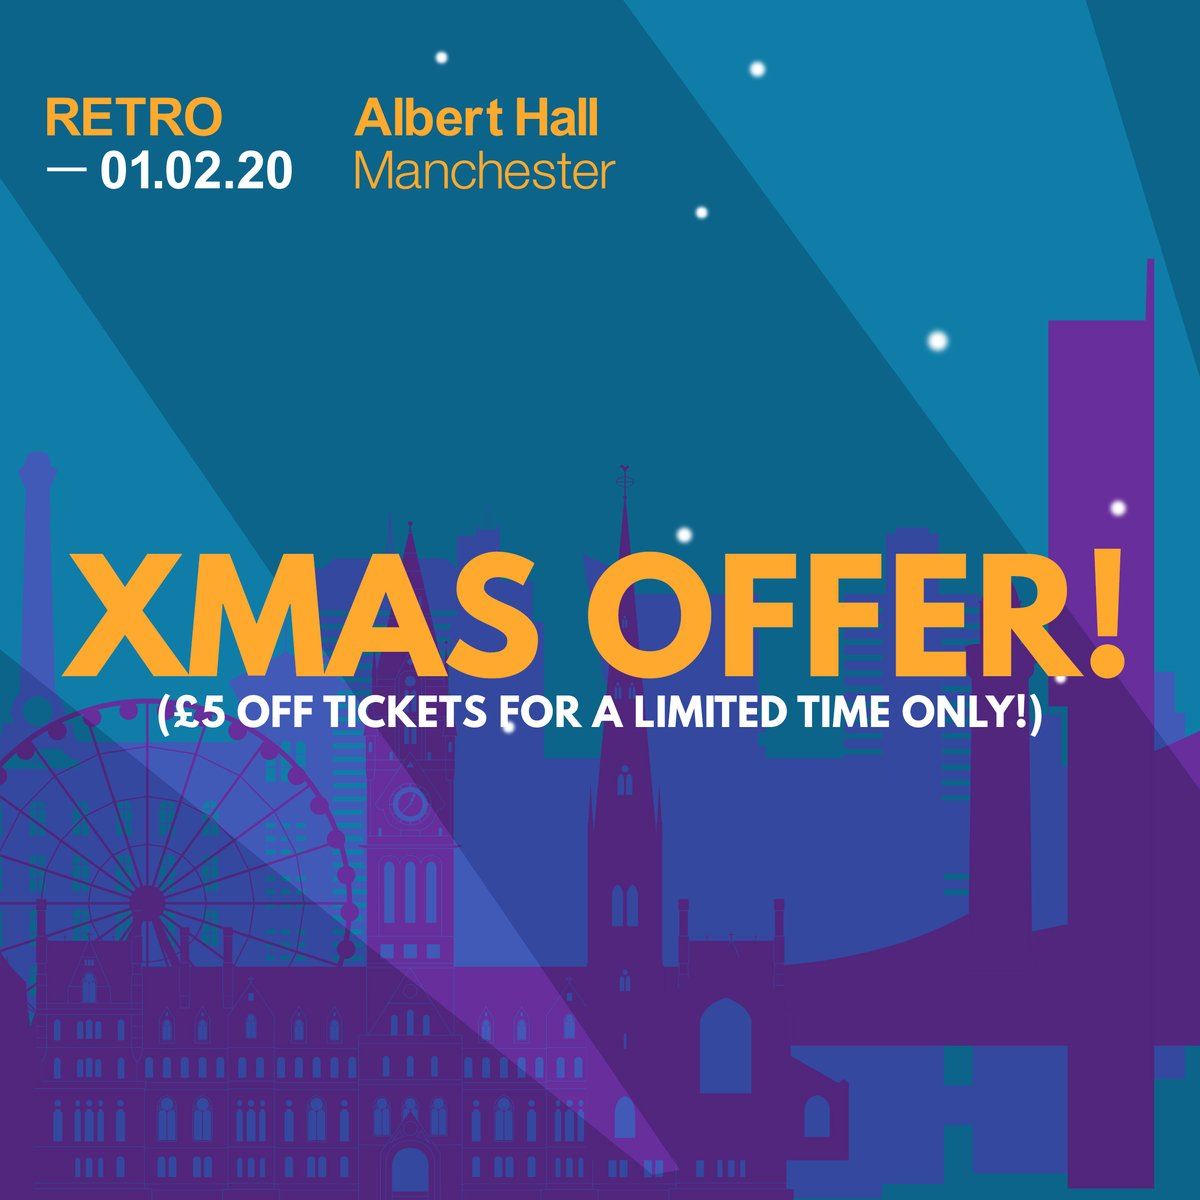 💨For a limited time only tickets for RETRO are £5 OFF, go grab one before they're gone: bit.ly/35CDXWB 💨